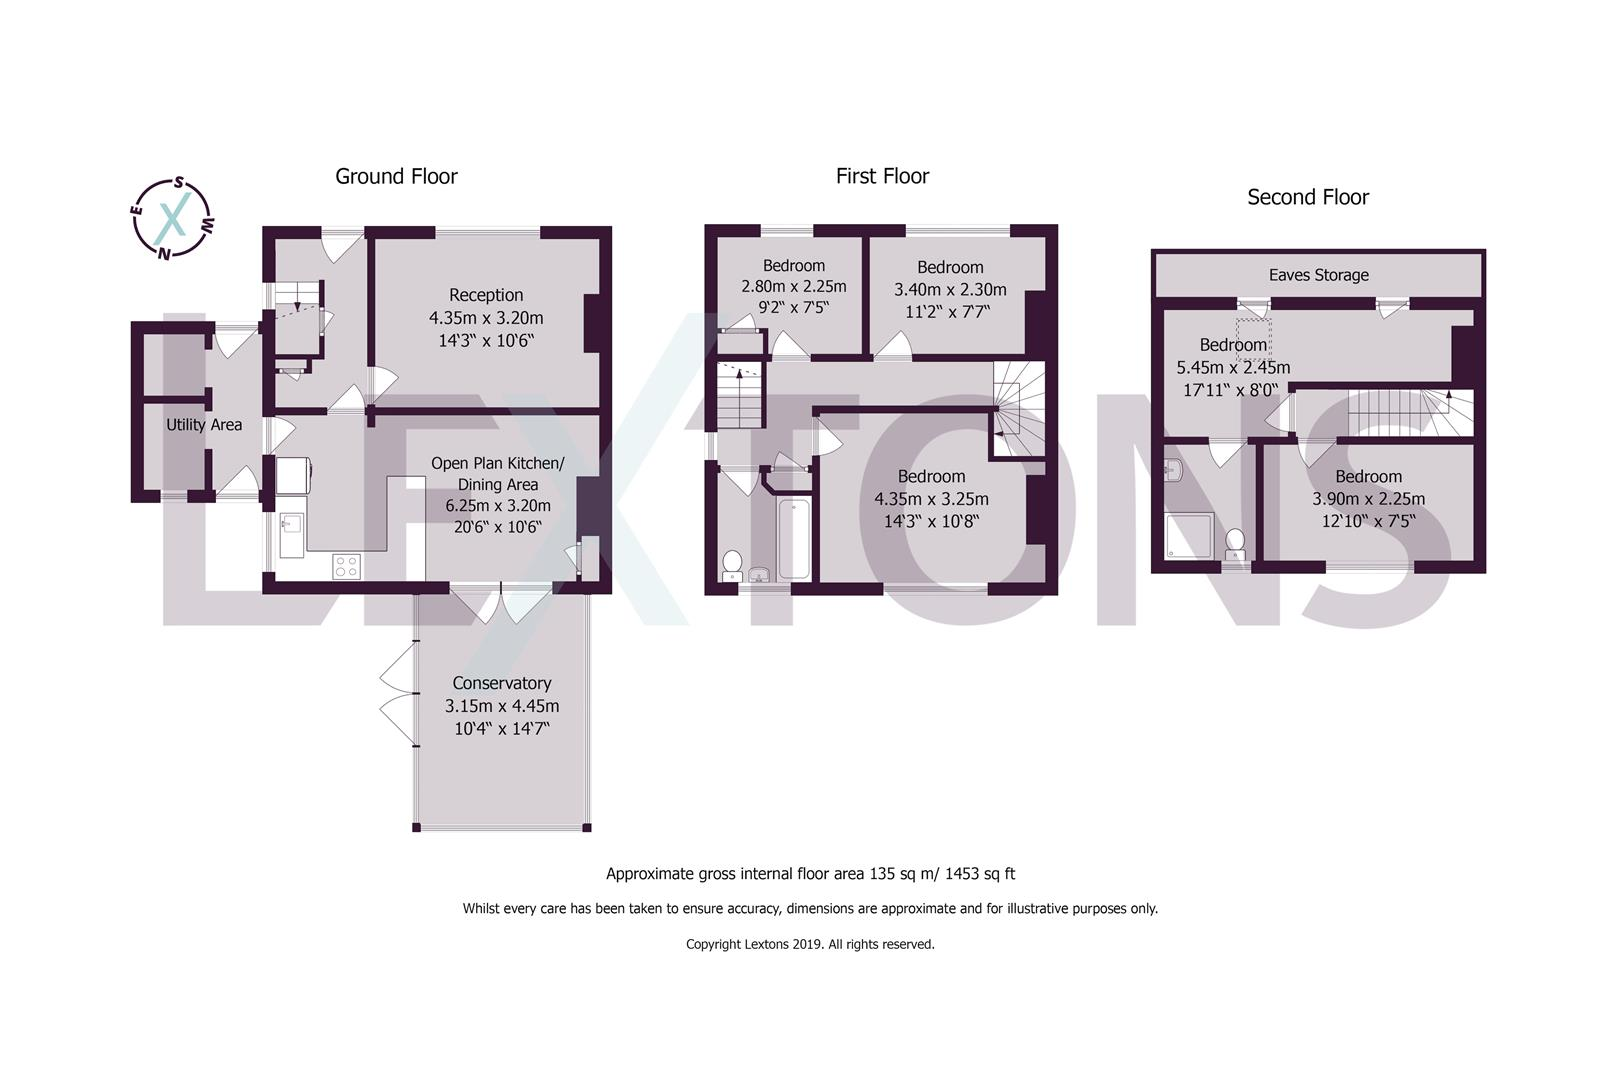 Floorplans For Denton Drive, Brighton